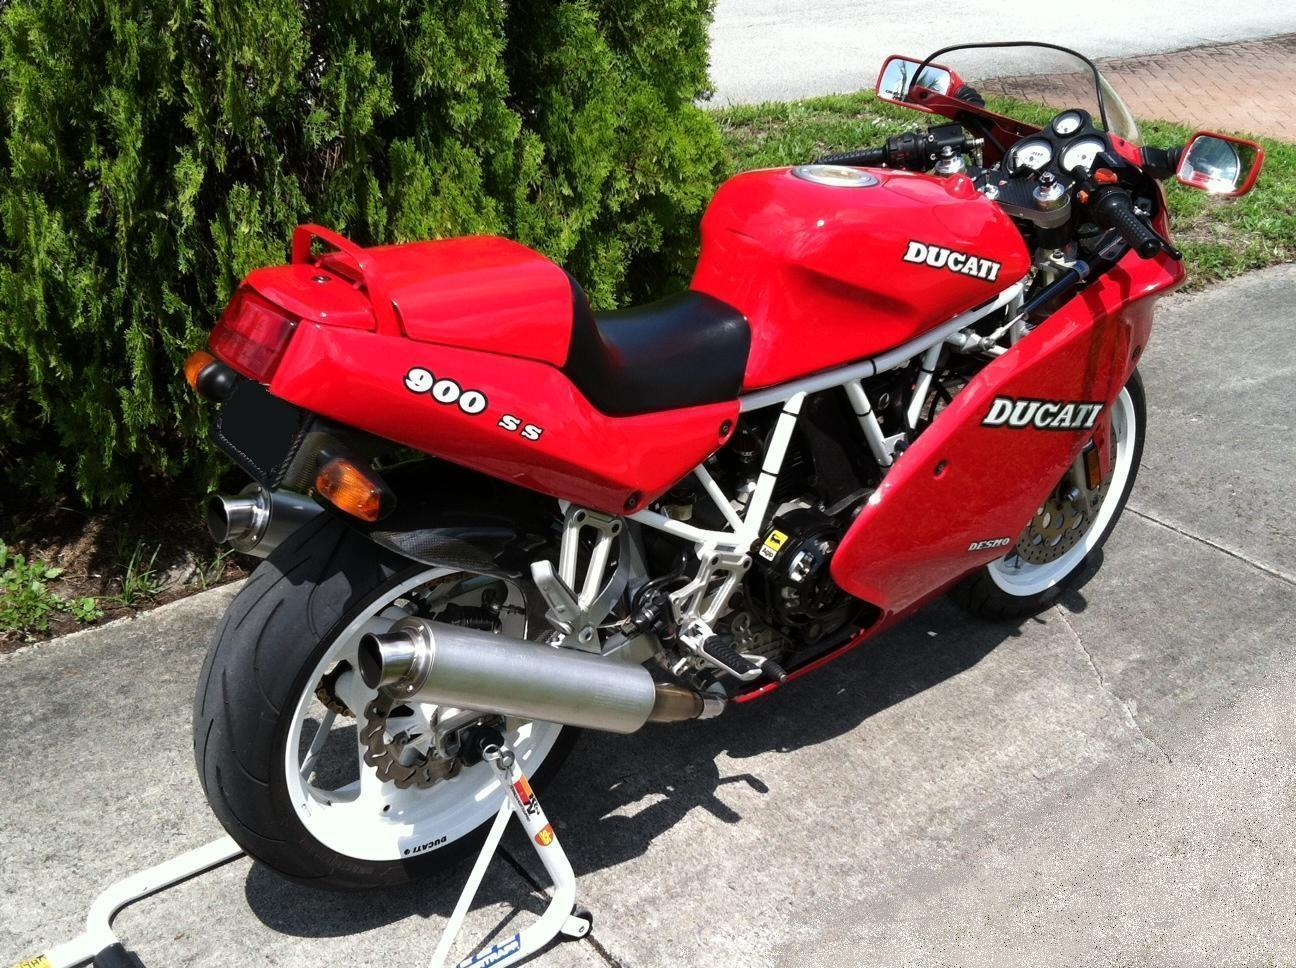 Ducati 900 SS 1994 images #78841